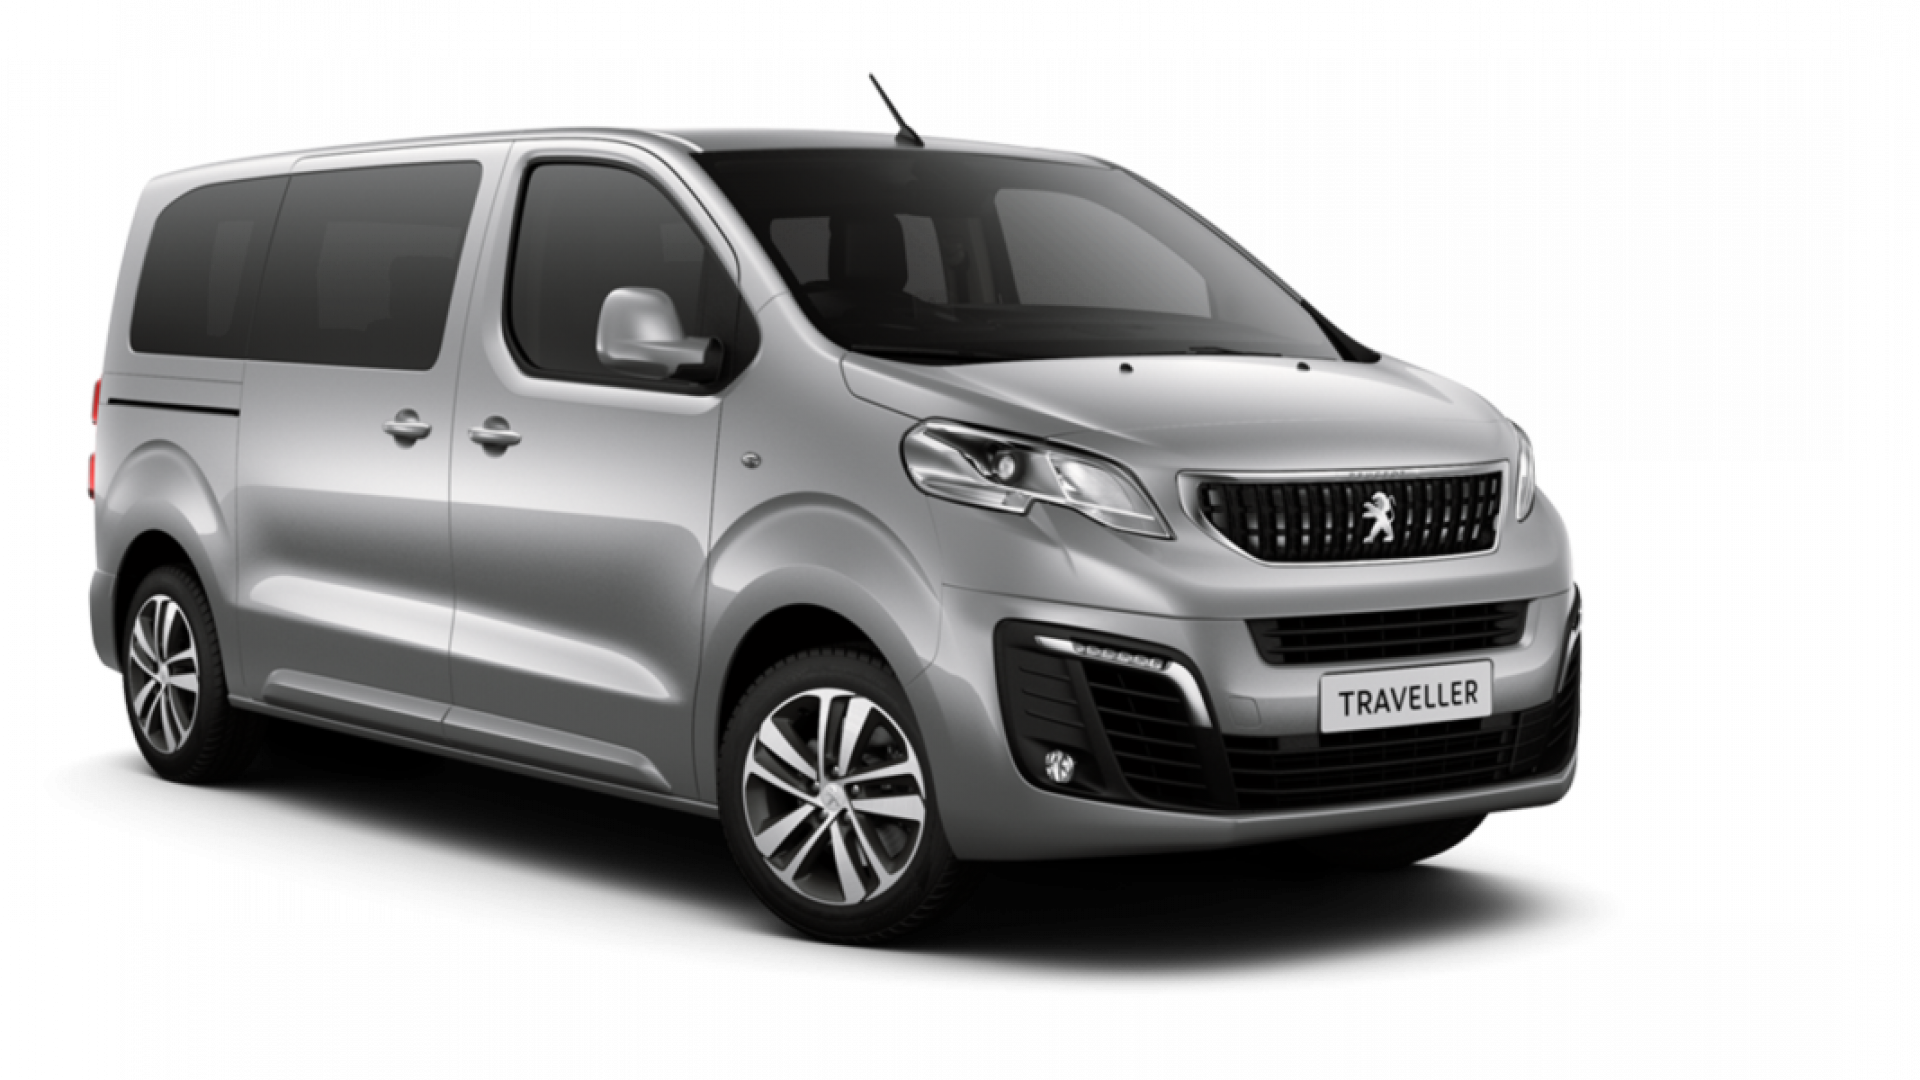 new peugeot traveller sw 2 0 bluehdi 180 allure standard 5dr eat6 robins and day. Black Bedroom Furniture Sets. Home Design Ideas